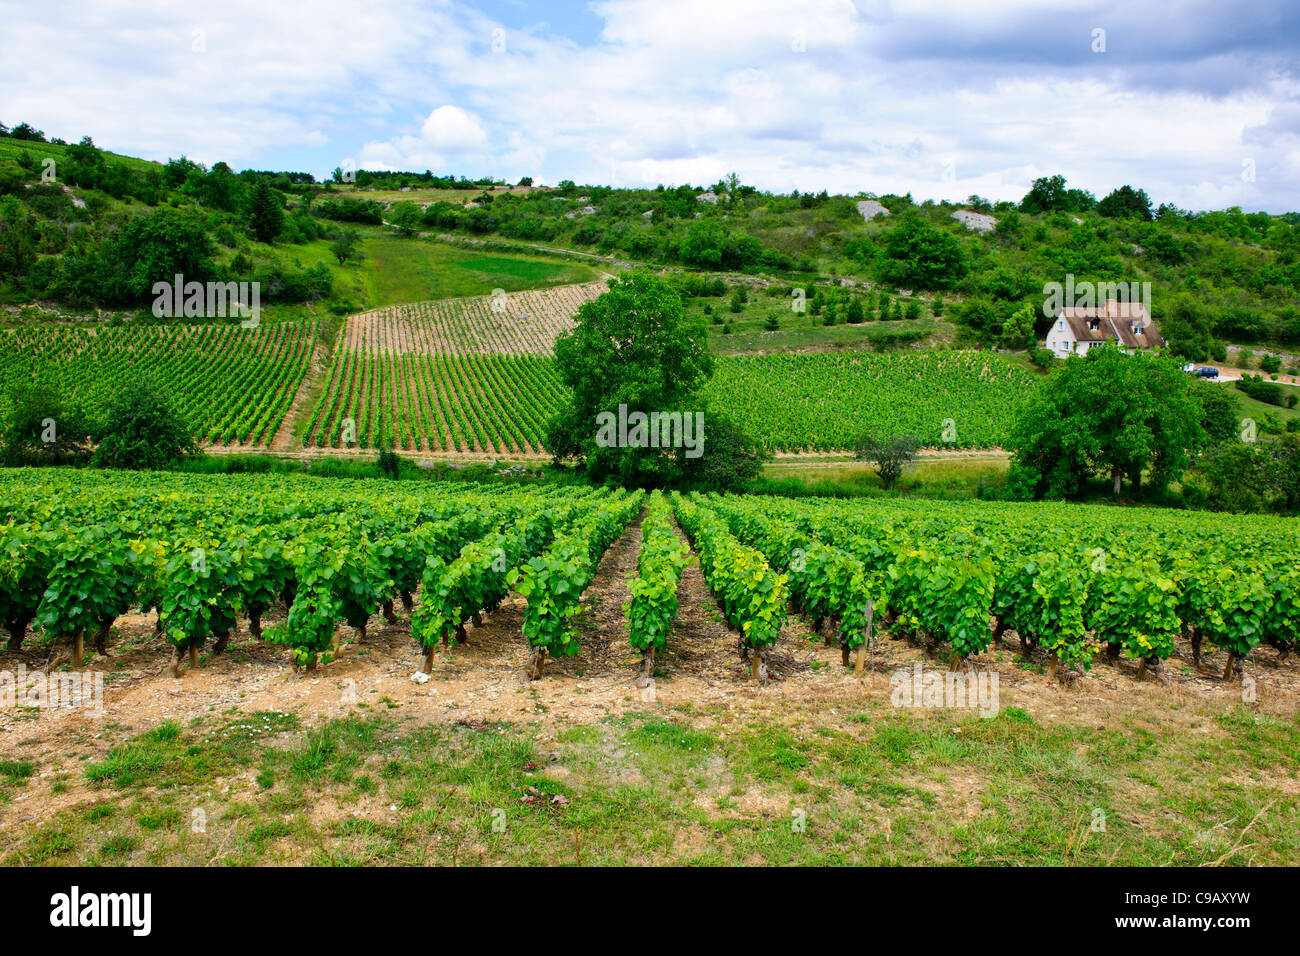 Grande Cave A Vin Vin De Bourgogne Stock Photos Vin De Bourgogne Stock Images Alamy